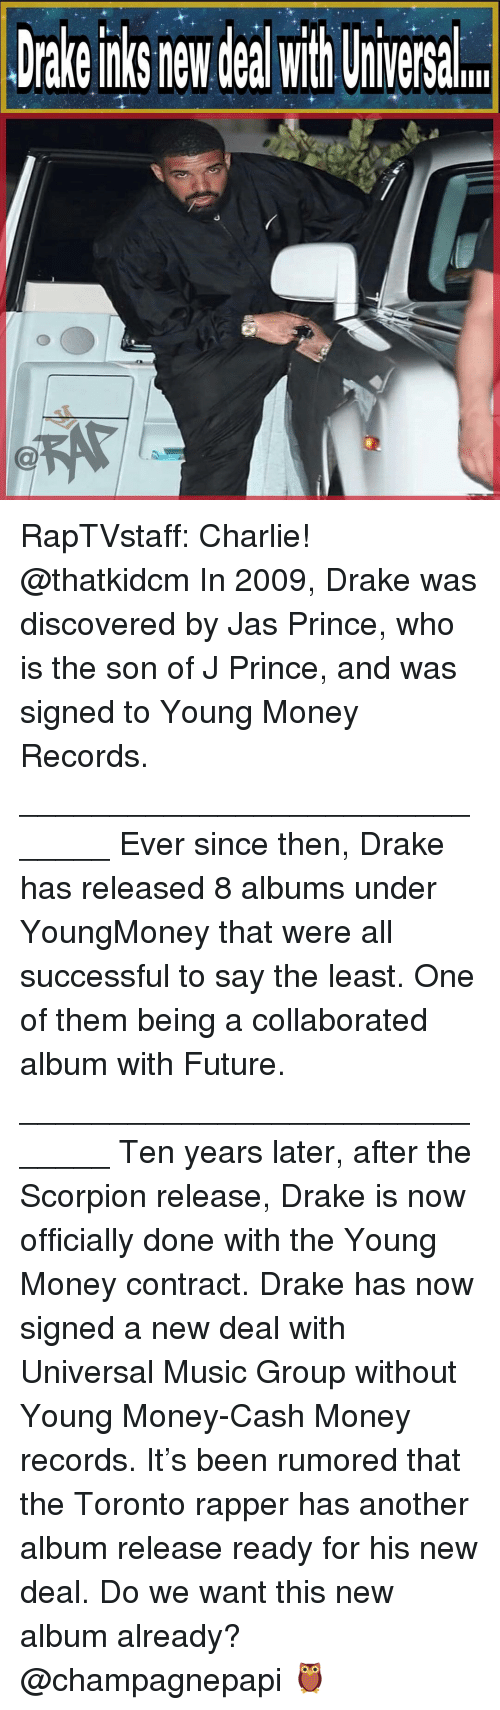 jas: Drake nks new deal with Uiversal RapTVstaff: Charlie! @thatkidcm In 2009, Drake was discovered by Jas Prince, who is the son of J Prince, and was signed to Young Money Records. ______________________________ Ever since then, Drake has released 8 albums under YoungMoney that were all successful to say the least. One of them being a collaborated album with Future. ______________________________ Ten years later, after the Scorpion release, Drake is now officially done with the Young Money contract. Drake has now signed a new deal with Universal Music Group without Young Money-Cash Money records. It's been rumored that the Toronto rapper has another album release ready for his new deal. Do we want this new album already? @champagnepapi 🦉